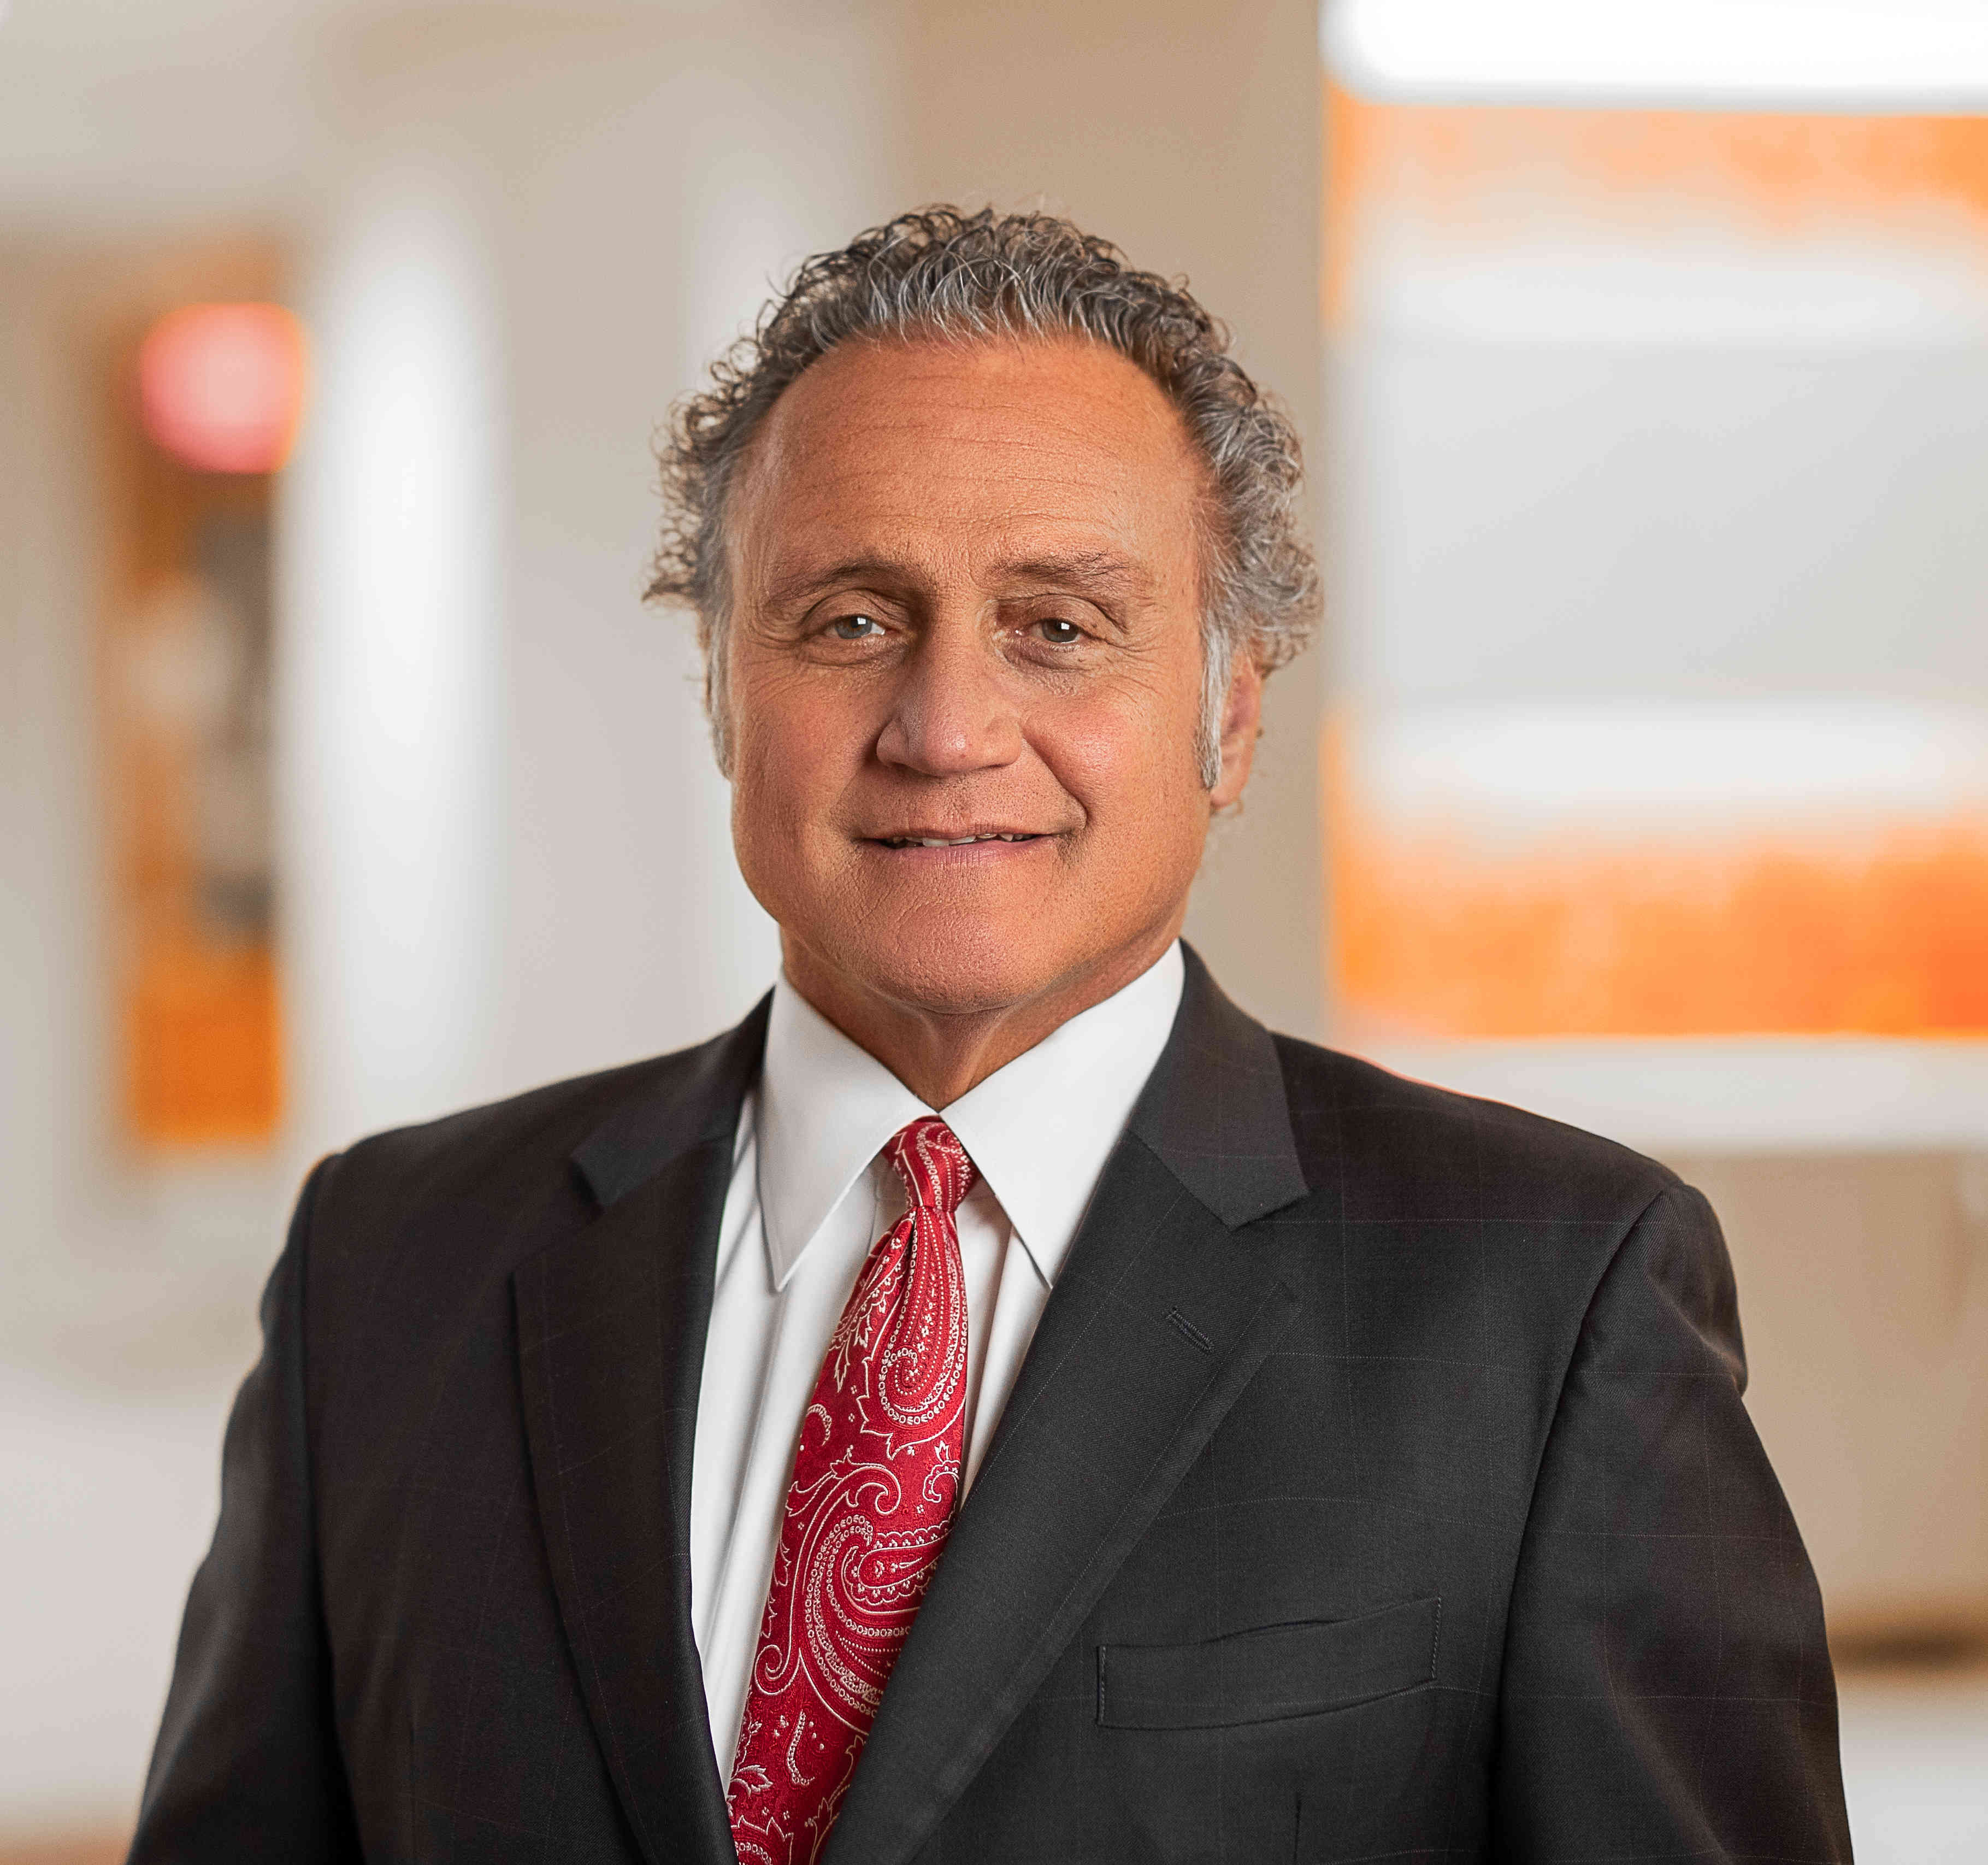 Michael Rallo Sr. is the Sr. Vice President at PARIC Corporation and reports to the president